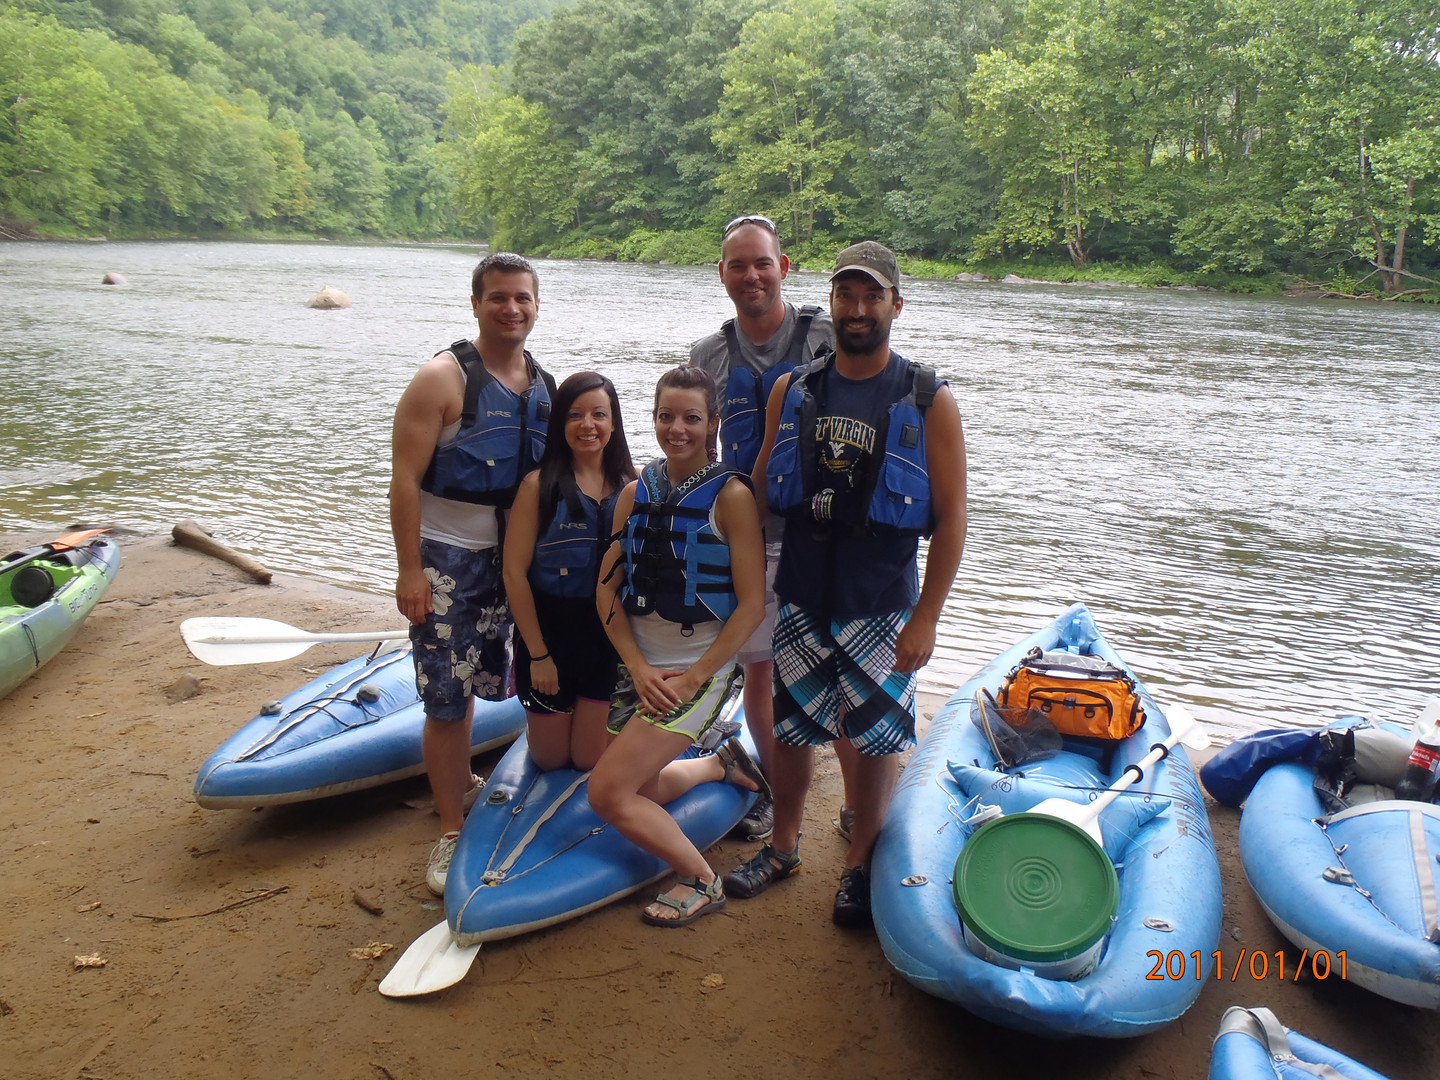 Rafting the Yough